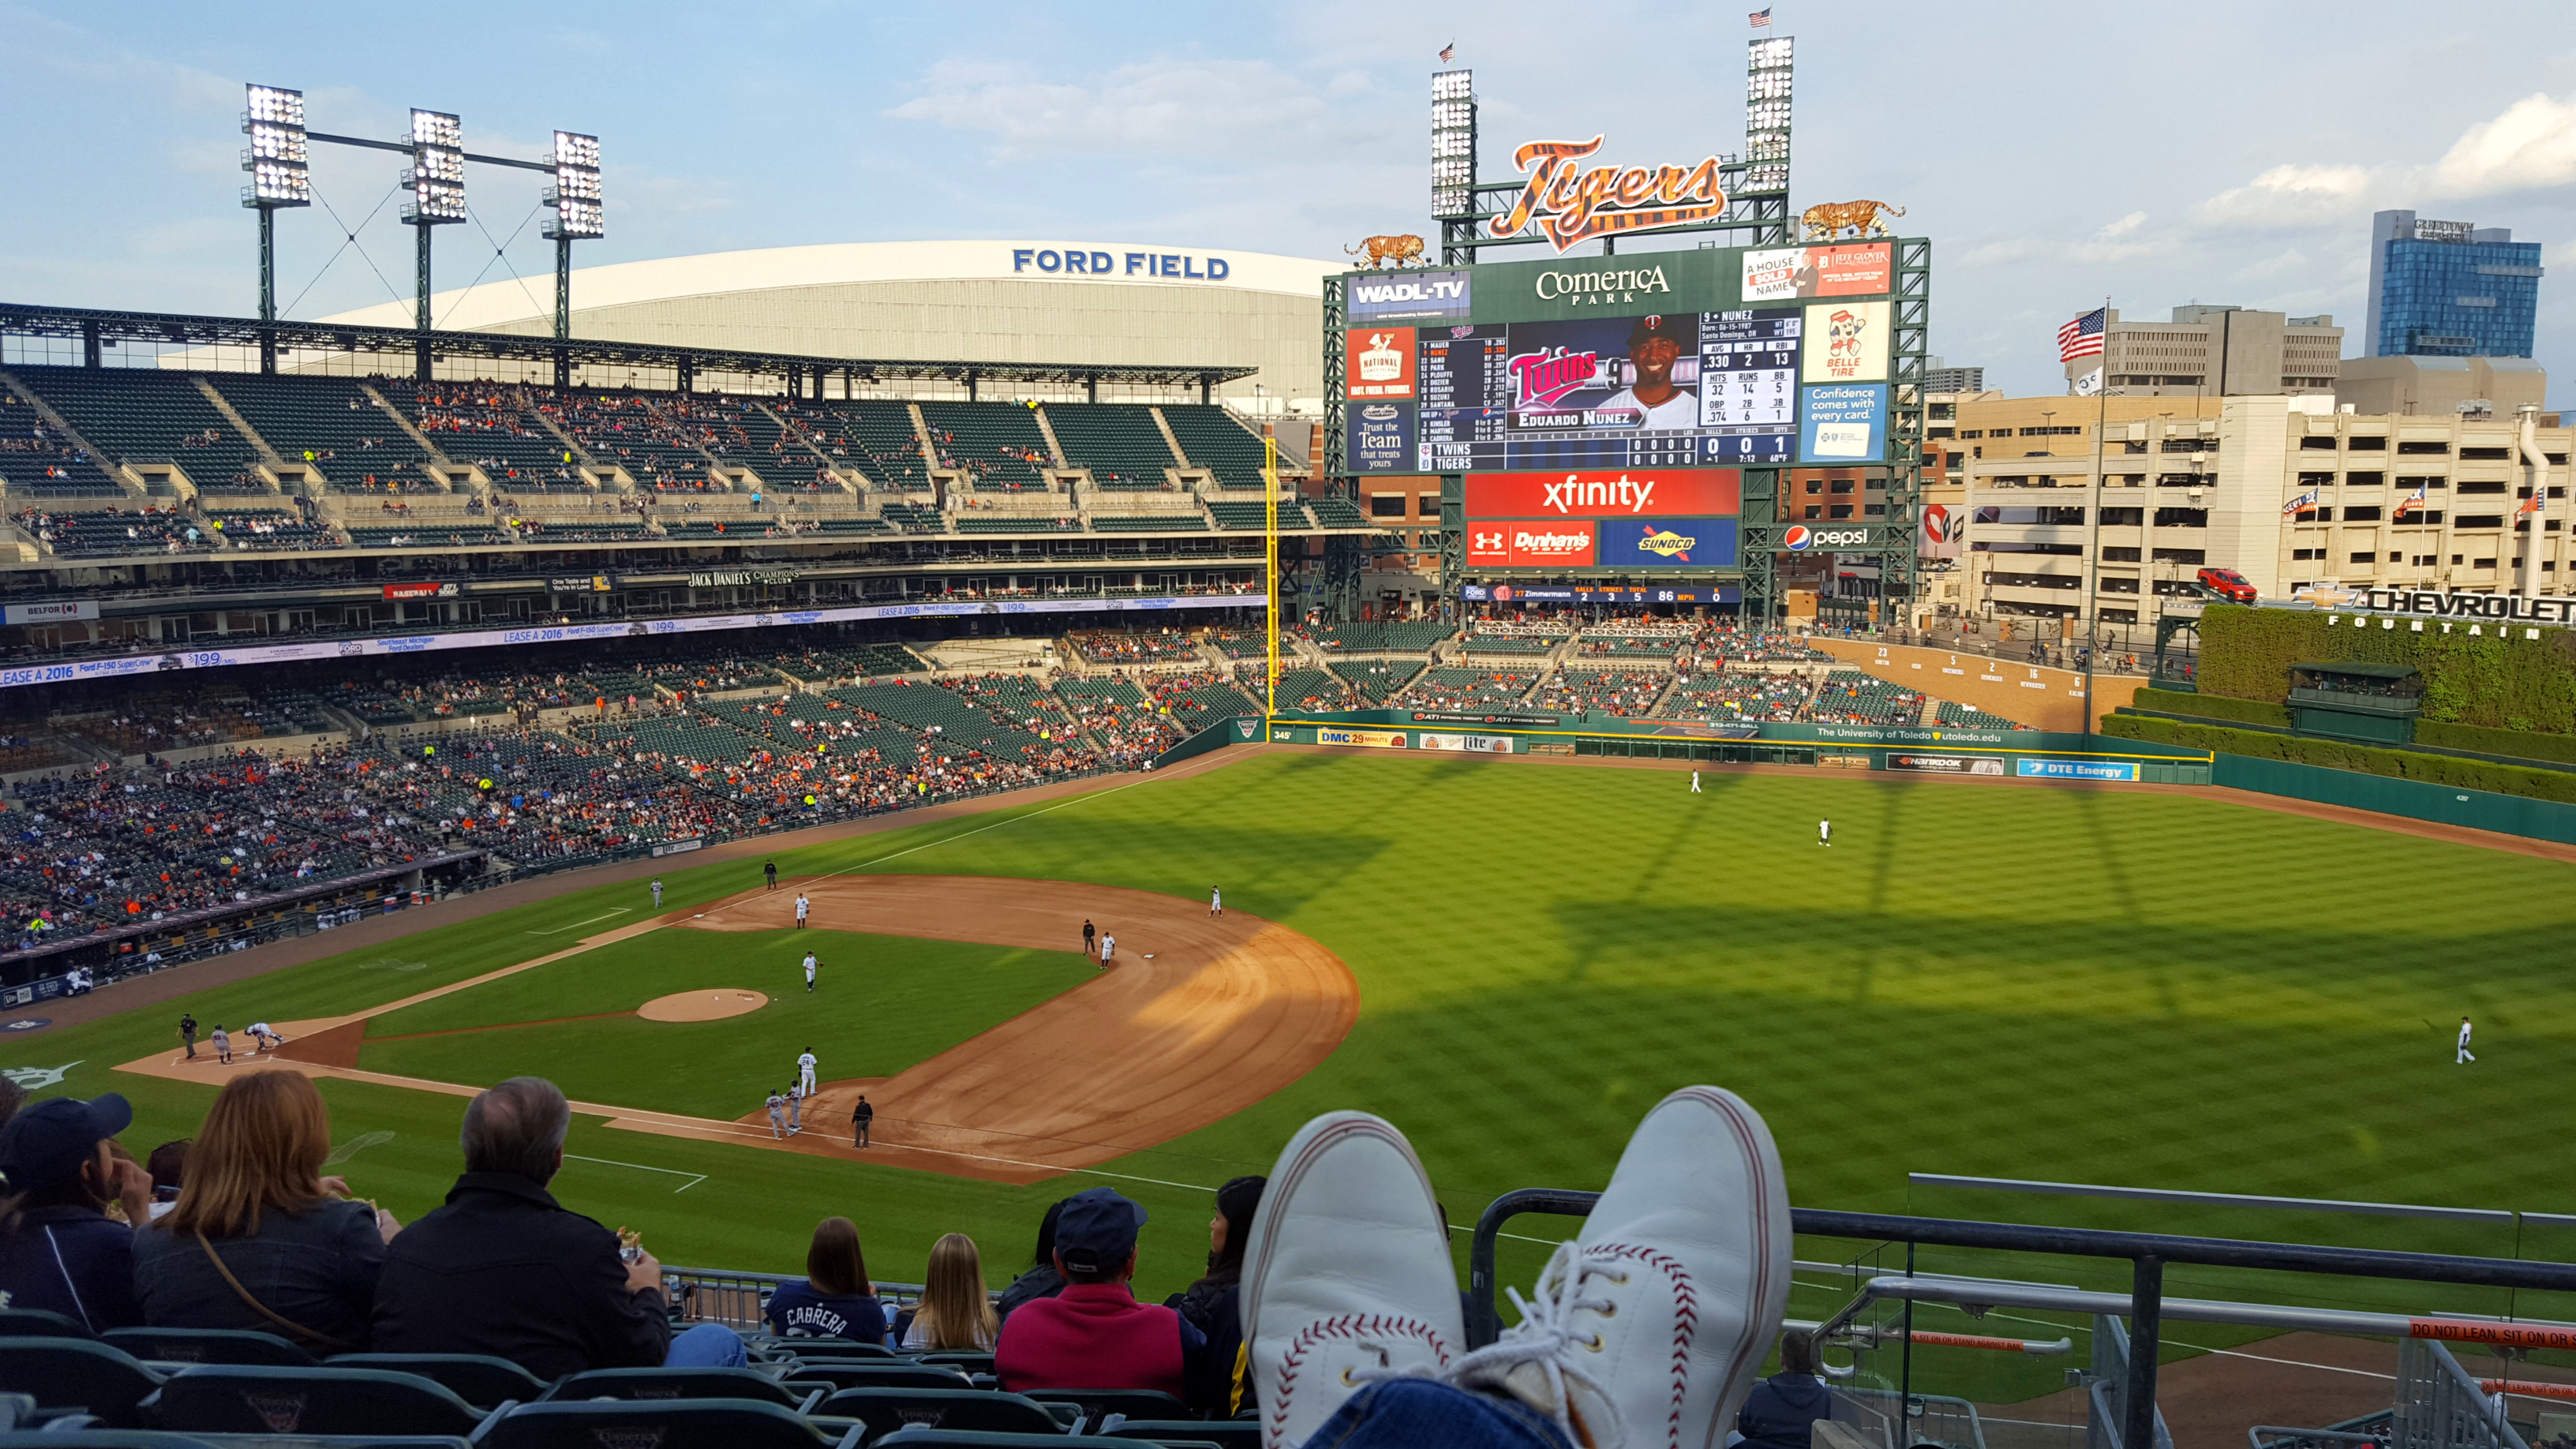 Detroit Tigers game at Comerica Park - Opening Day - Spring in Detroit